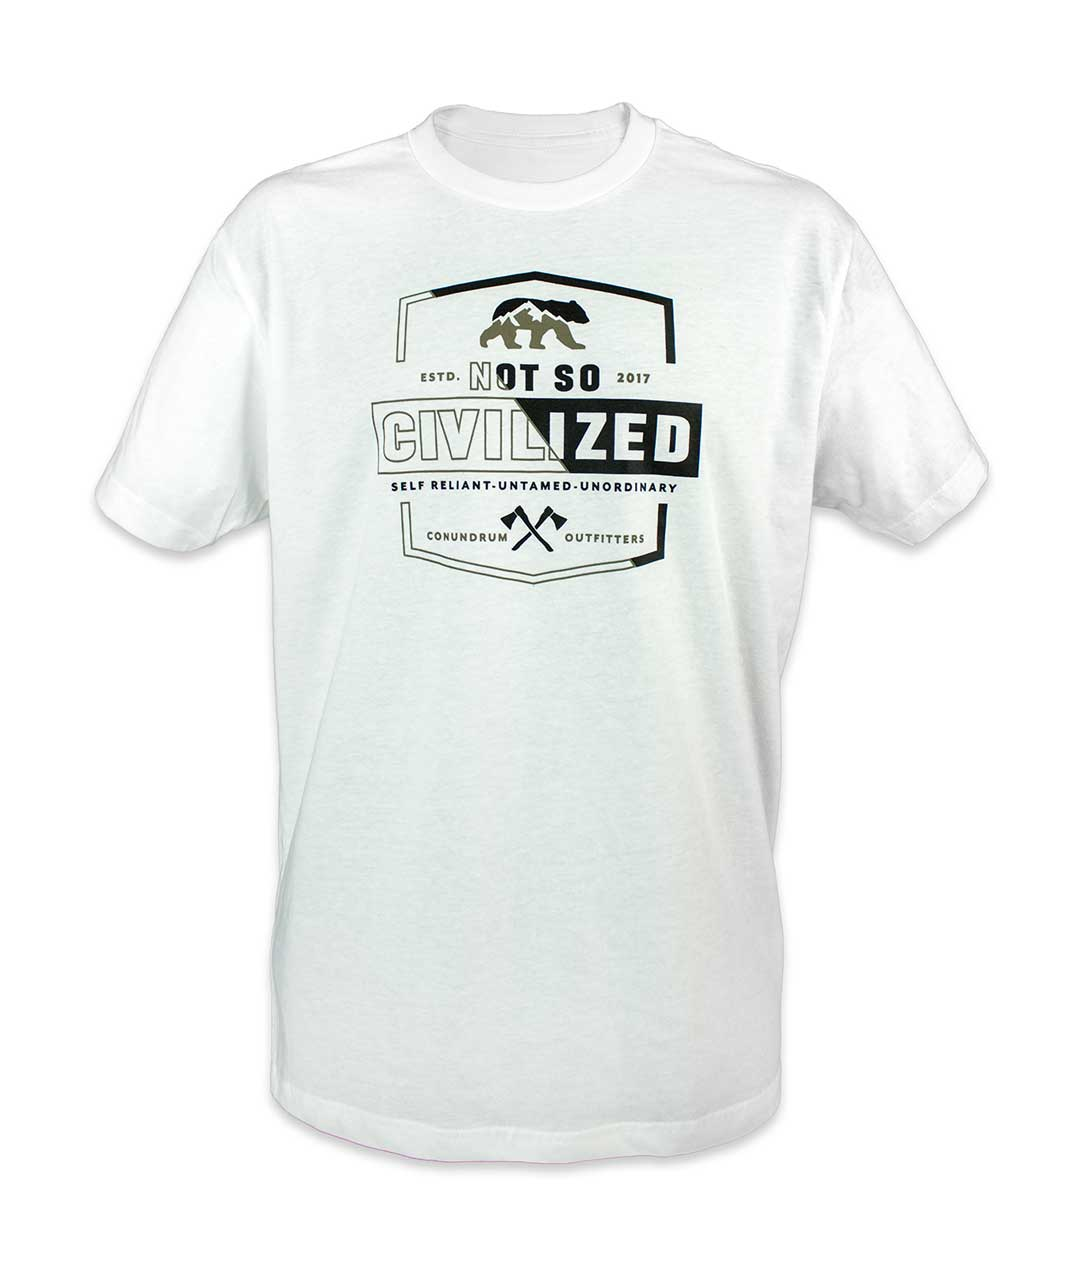 Uncivilized Short Sleeve White Outdoor Tshirt